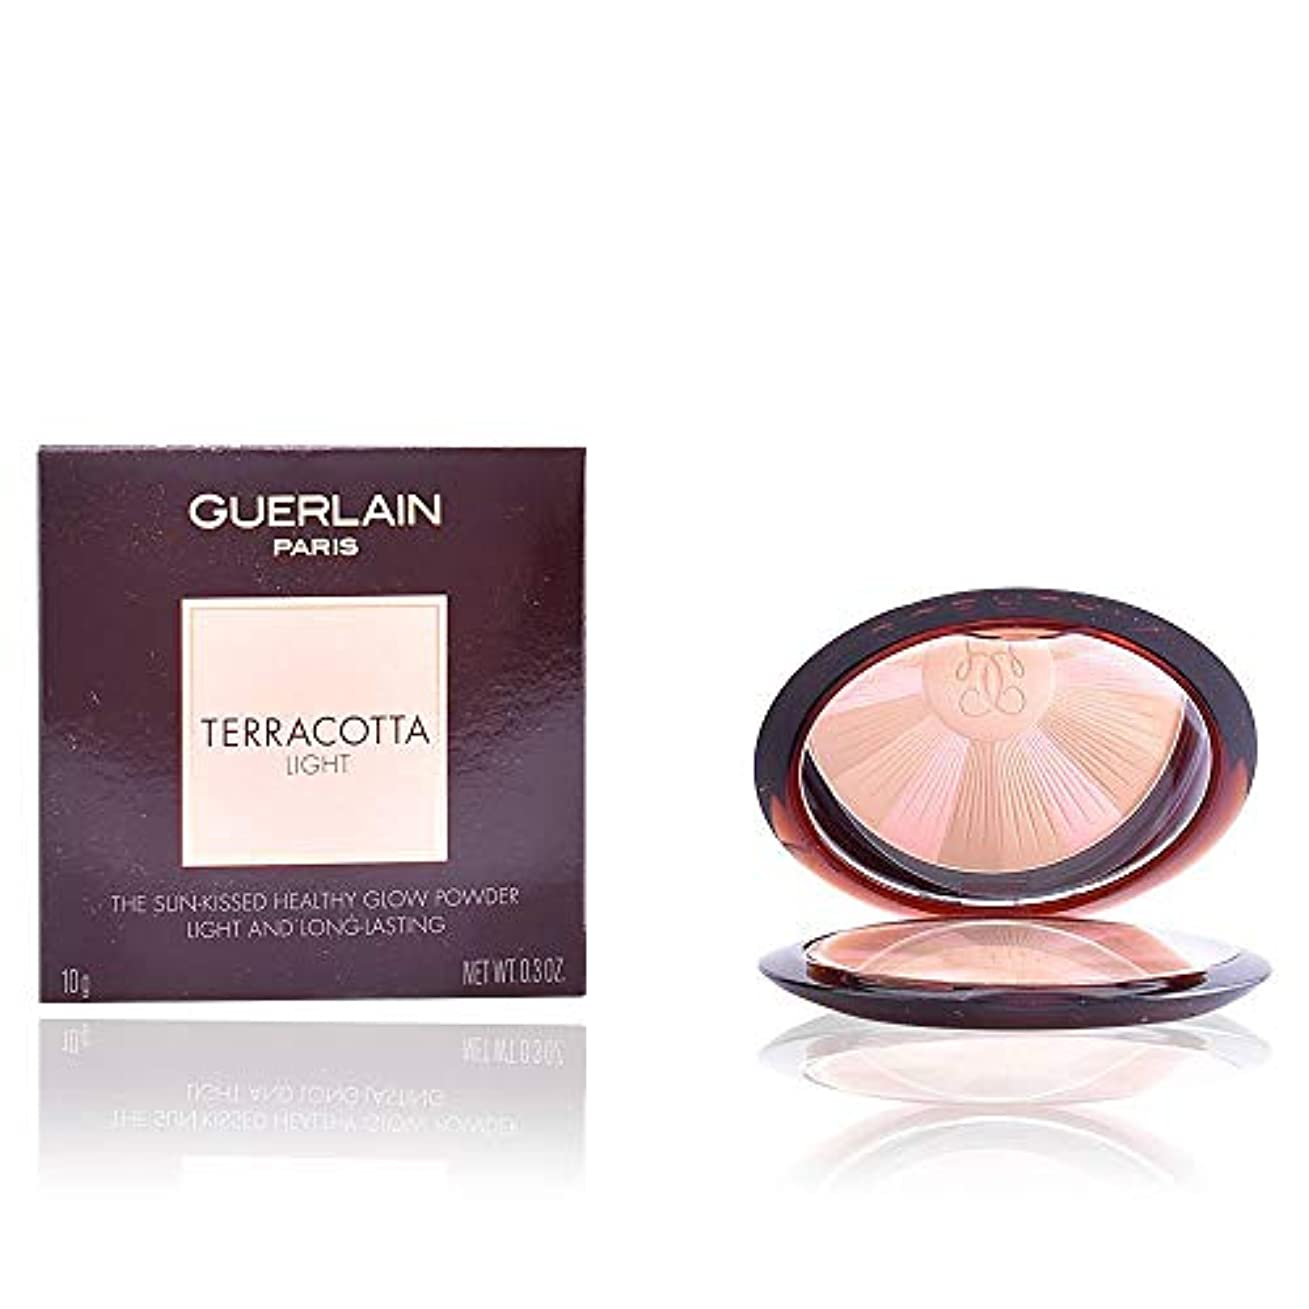 自宅で定常チャネルゲラン Terracotta Light The Sun Kissed Healthy Glow Powder - # 01 Light Warm 10g/0.3oz並行輸入品